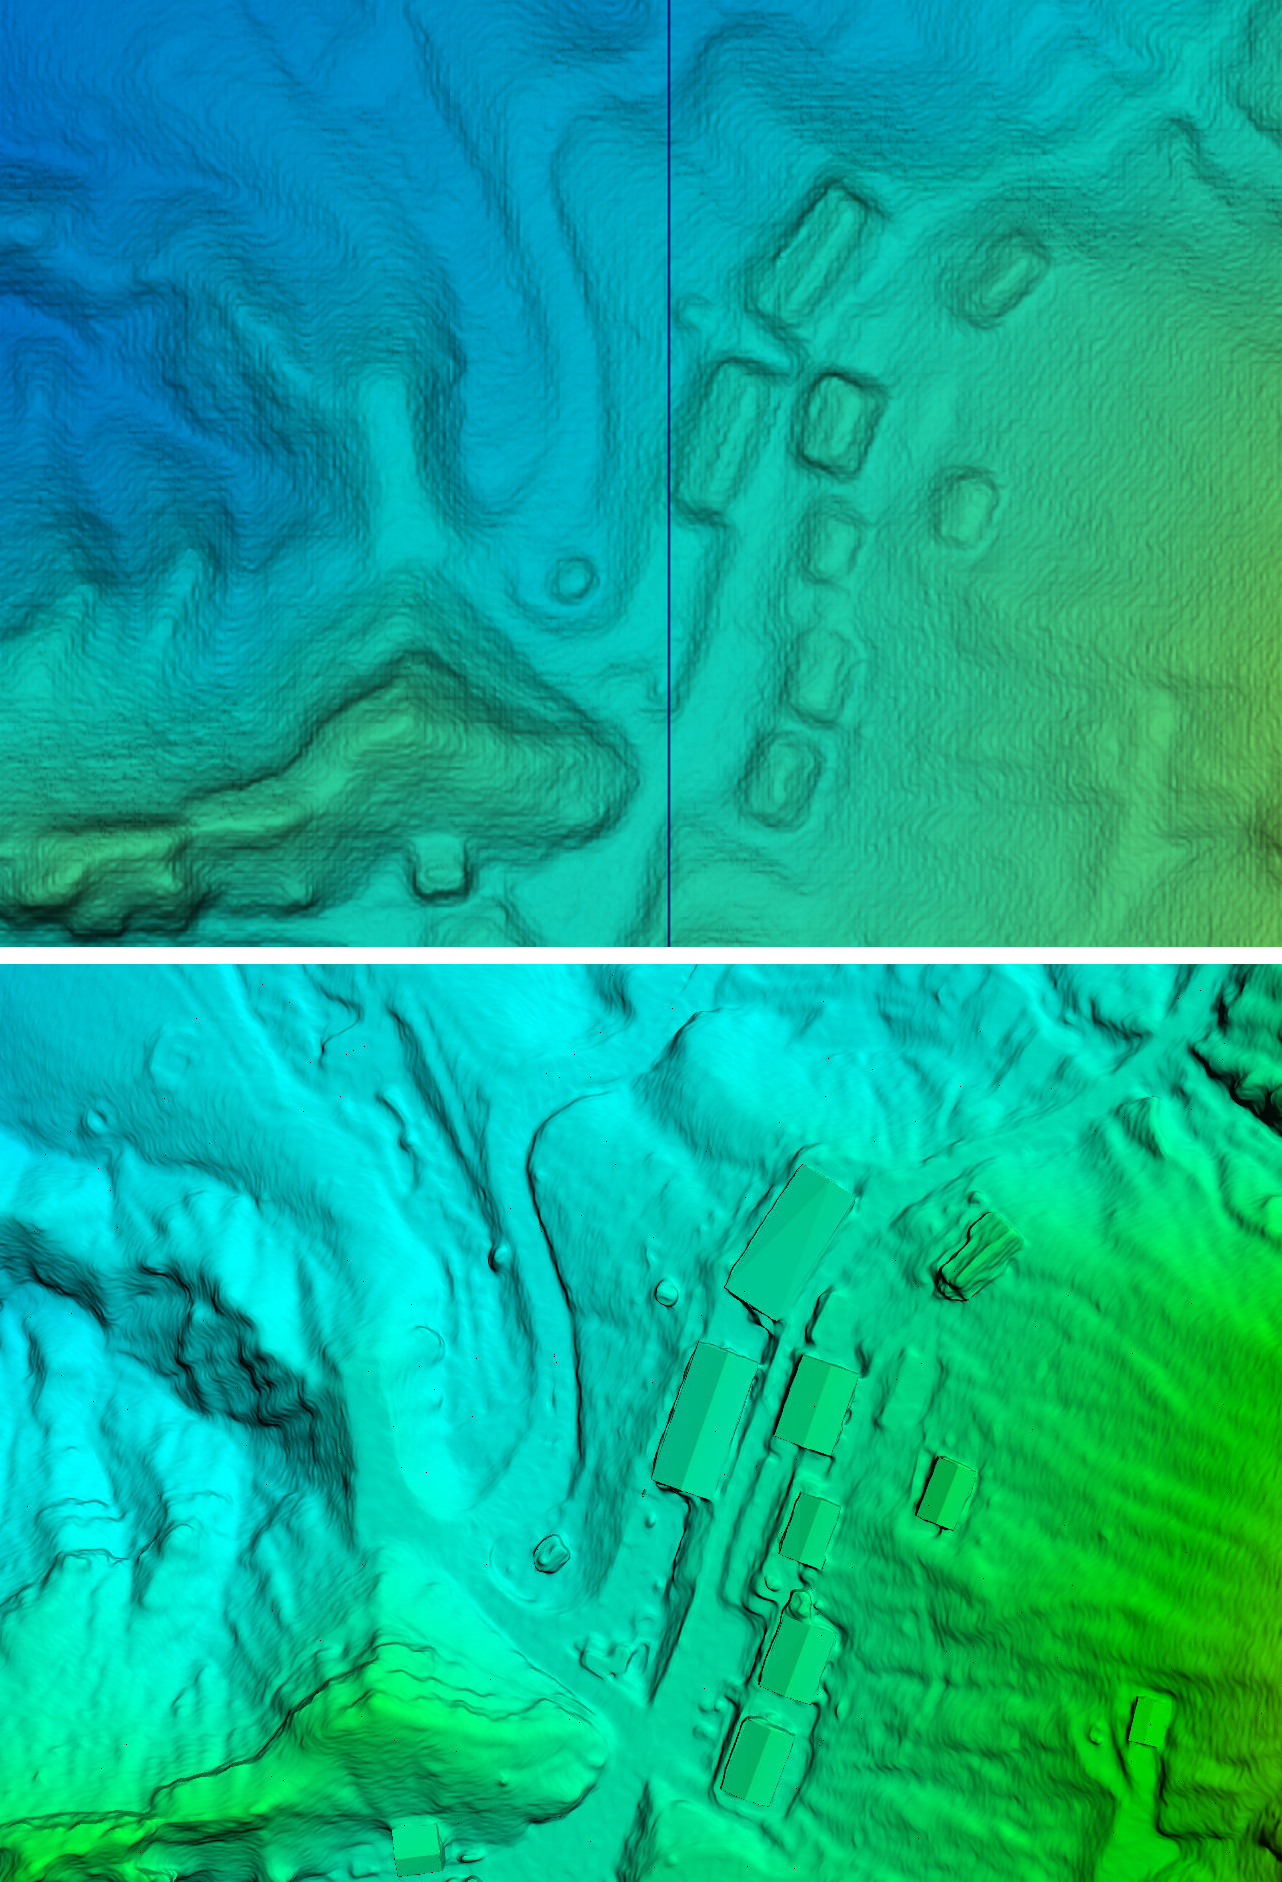 Two data products from the same data. The top was processed with automated, cloud-based software. The bottom, processed with local software, is of much higher quality–particularly with feature texture.